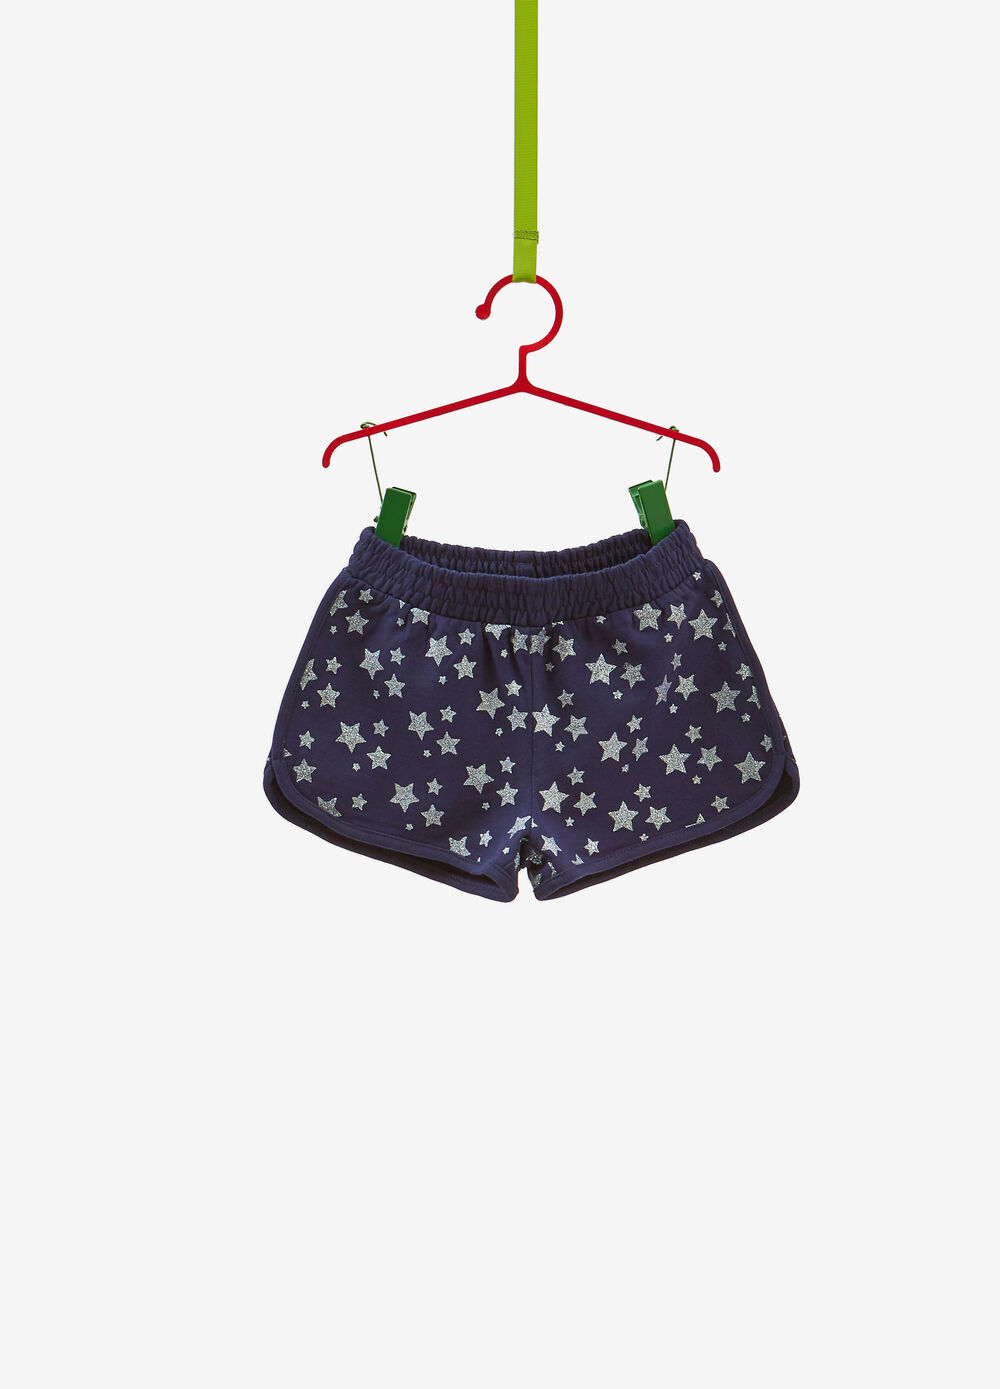 Shorts in 100% cotton with glitter stars print